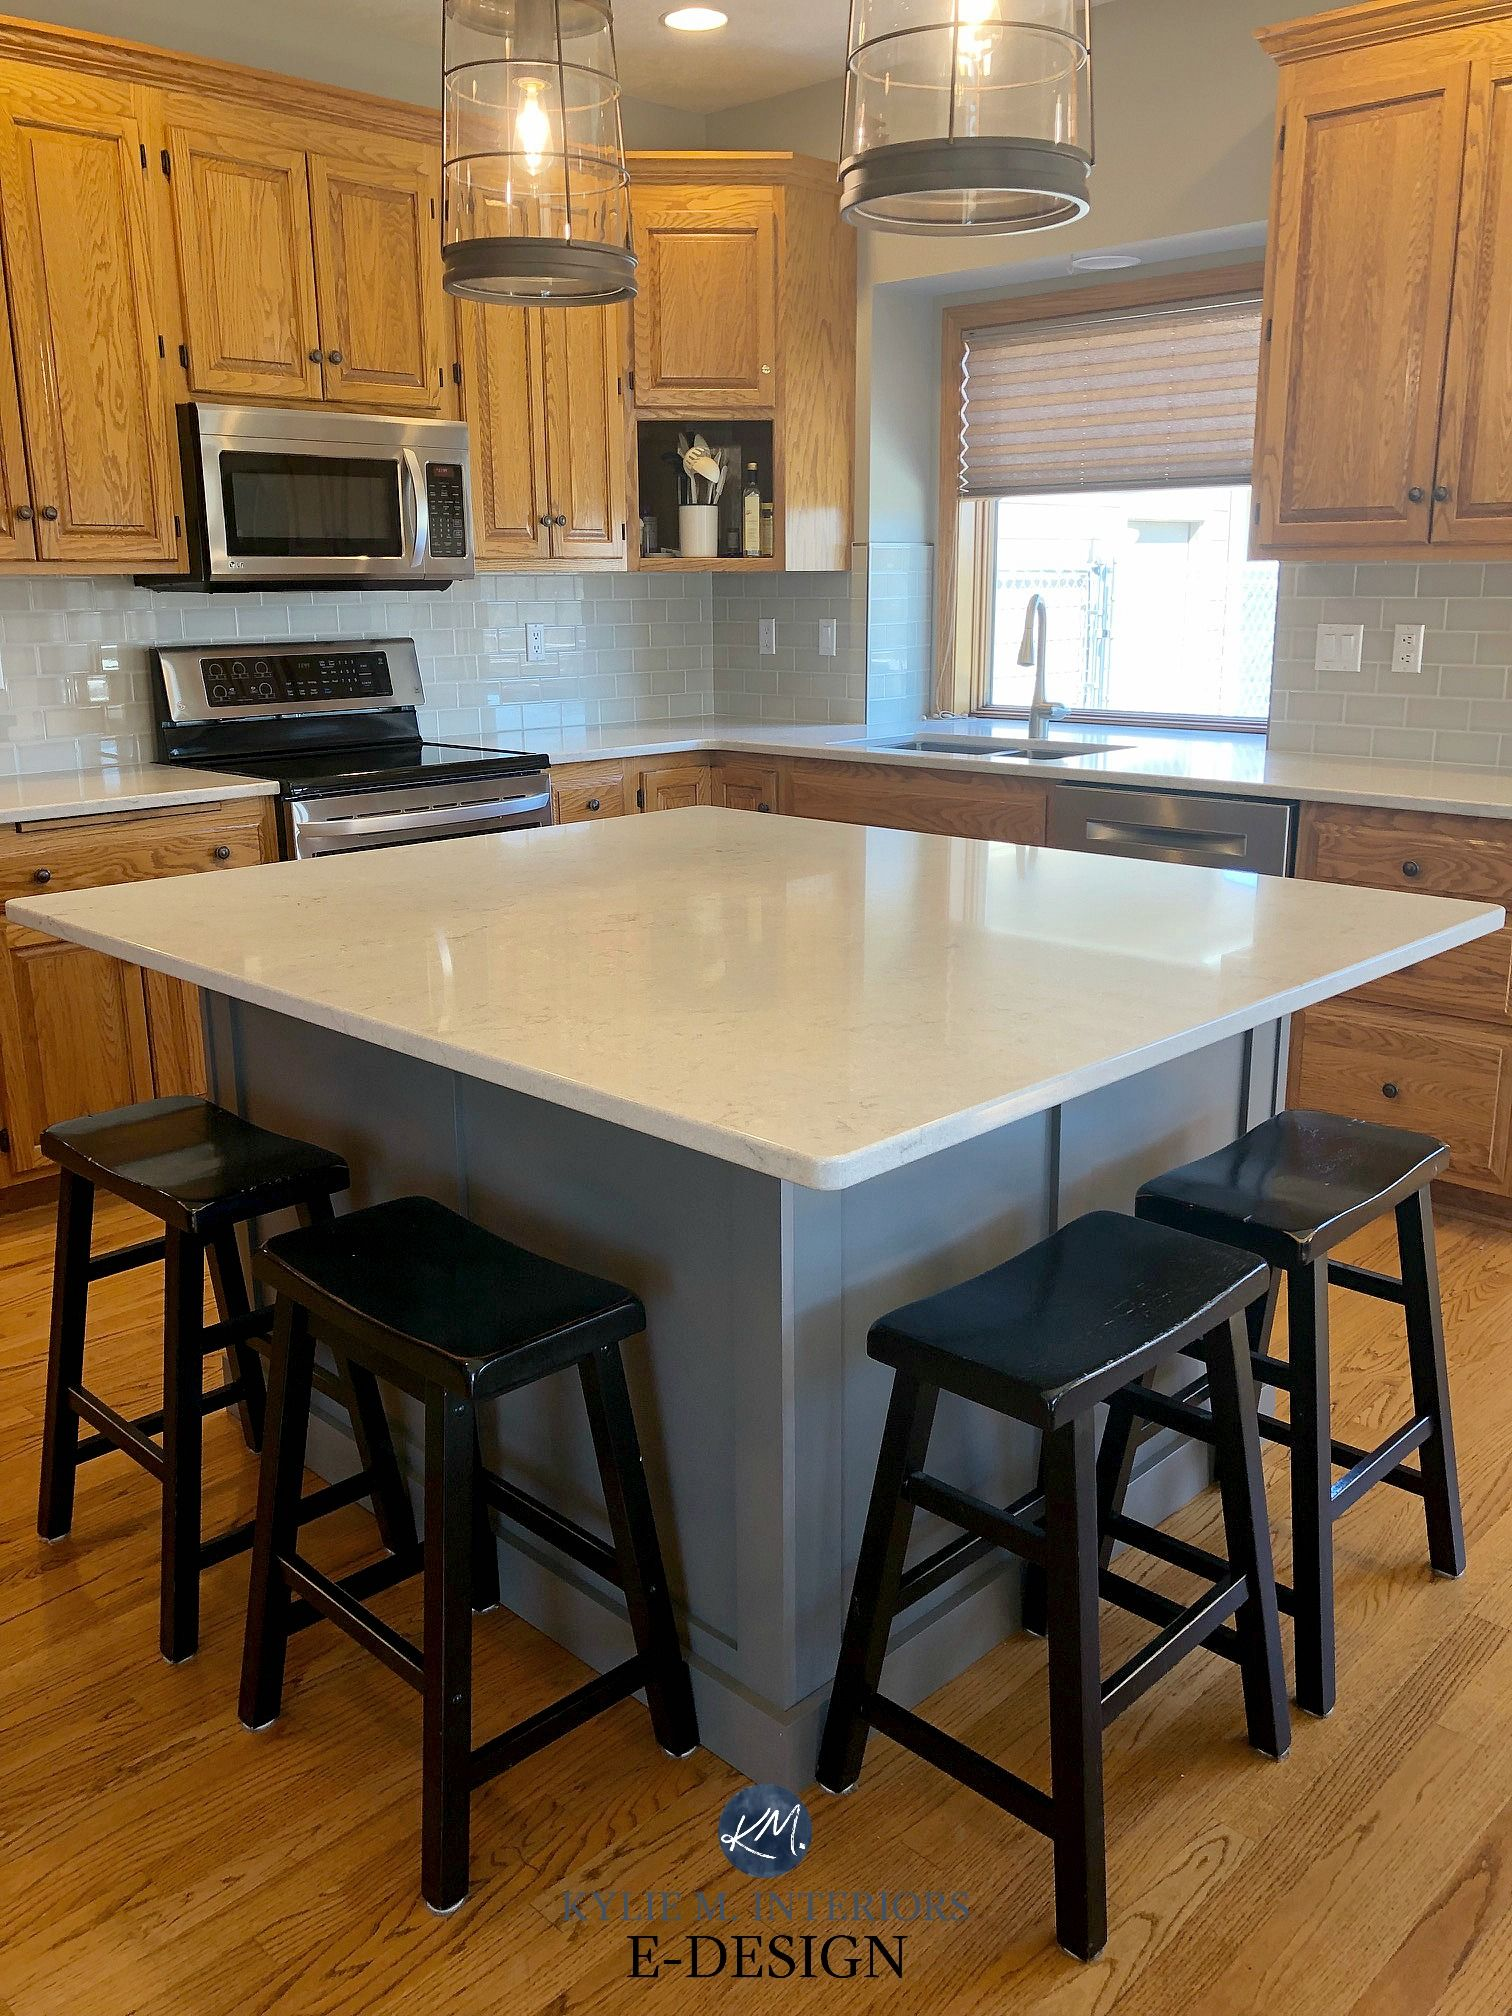 E-Design: 3 Painted Oak & Maple Kitchen Cabinet Projects ... on Maple Cabinet Kitchen Ideas  id=51060